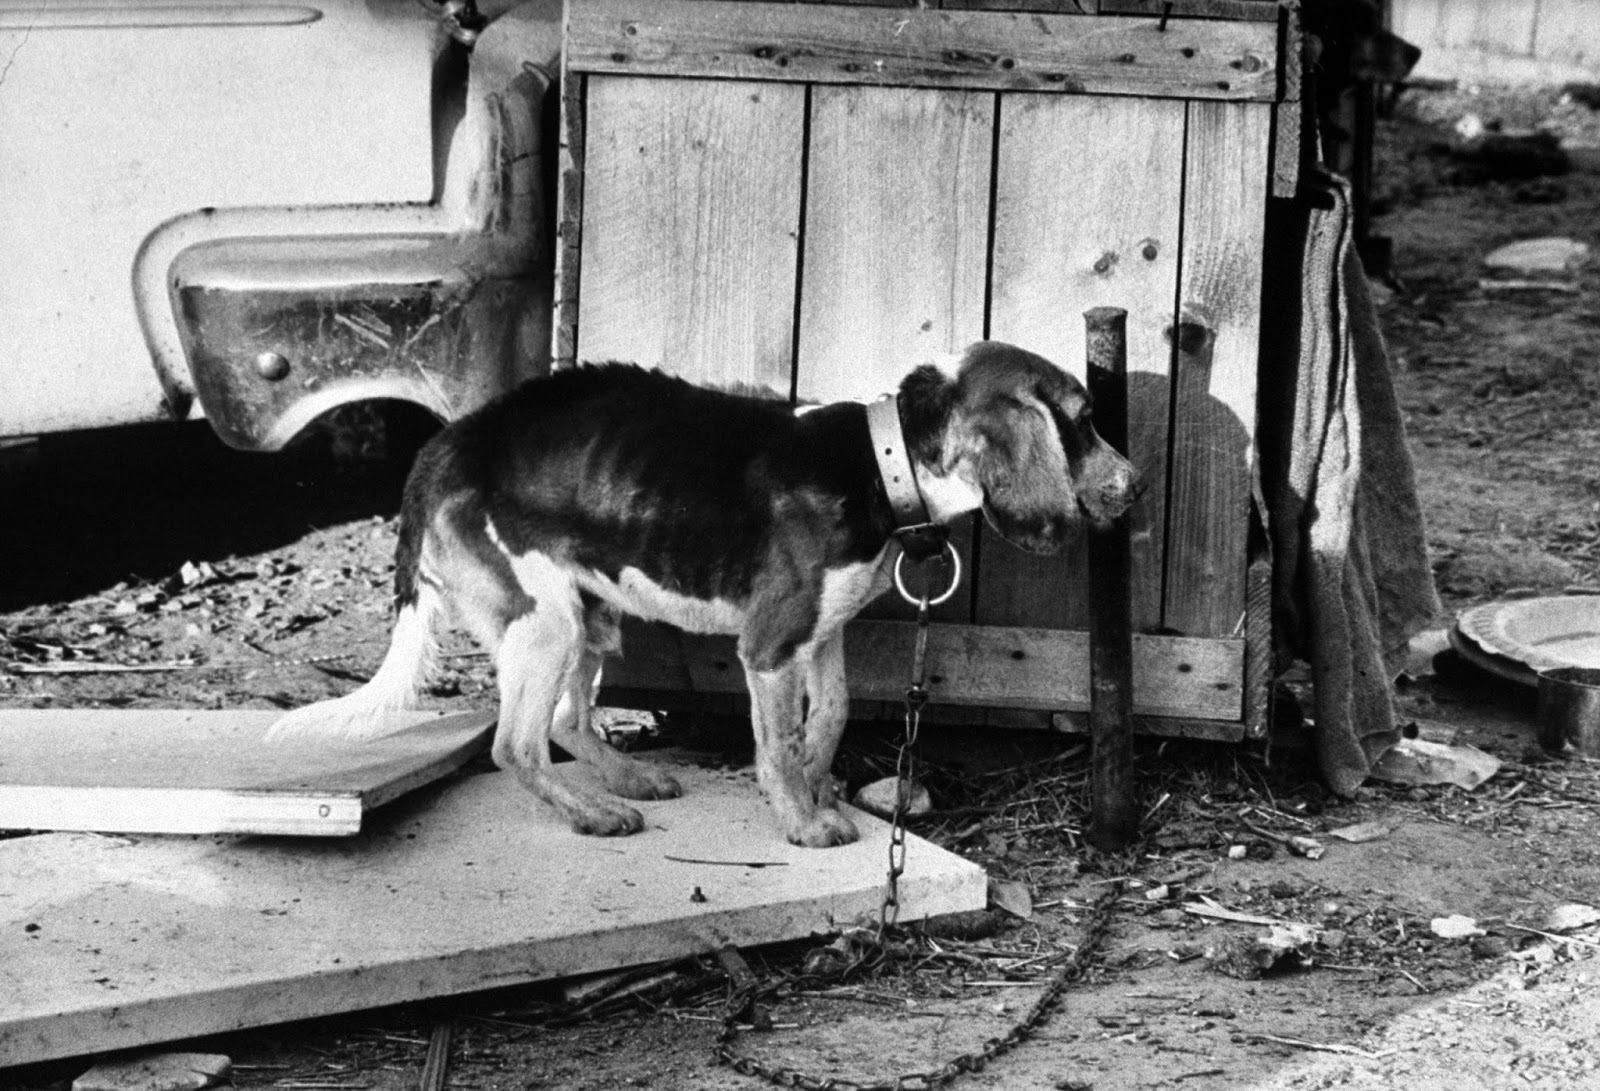 Concentration Camps For Dogs In 1966 Vintage Everyday